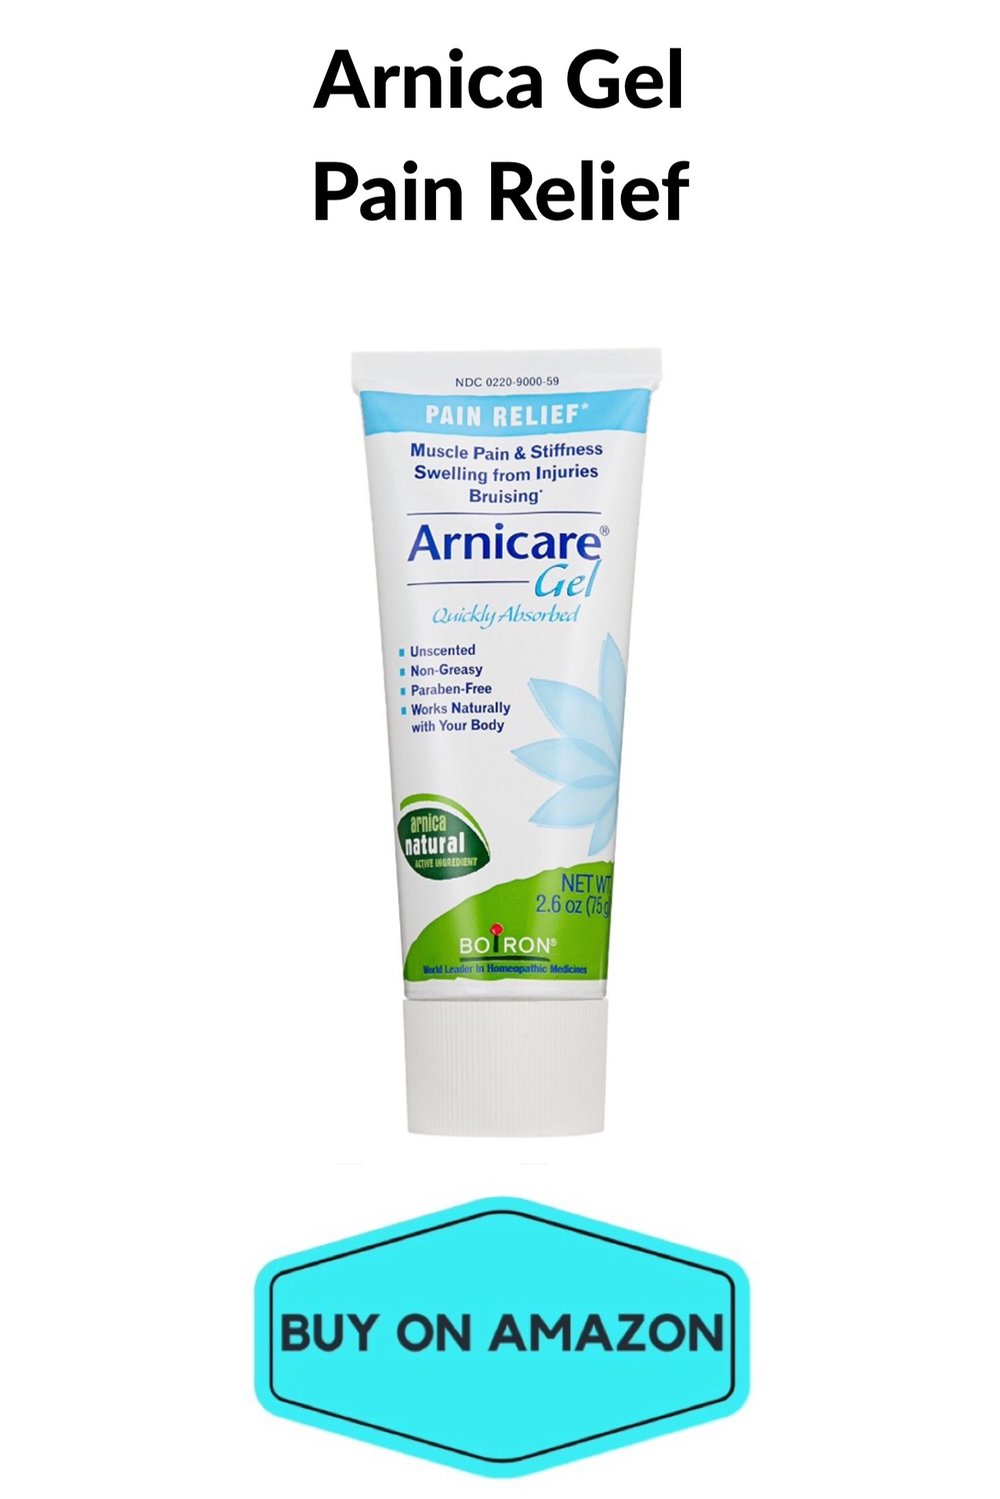 Arnica Gel Pain Relief